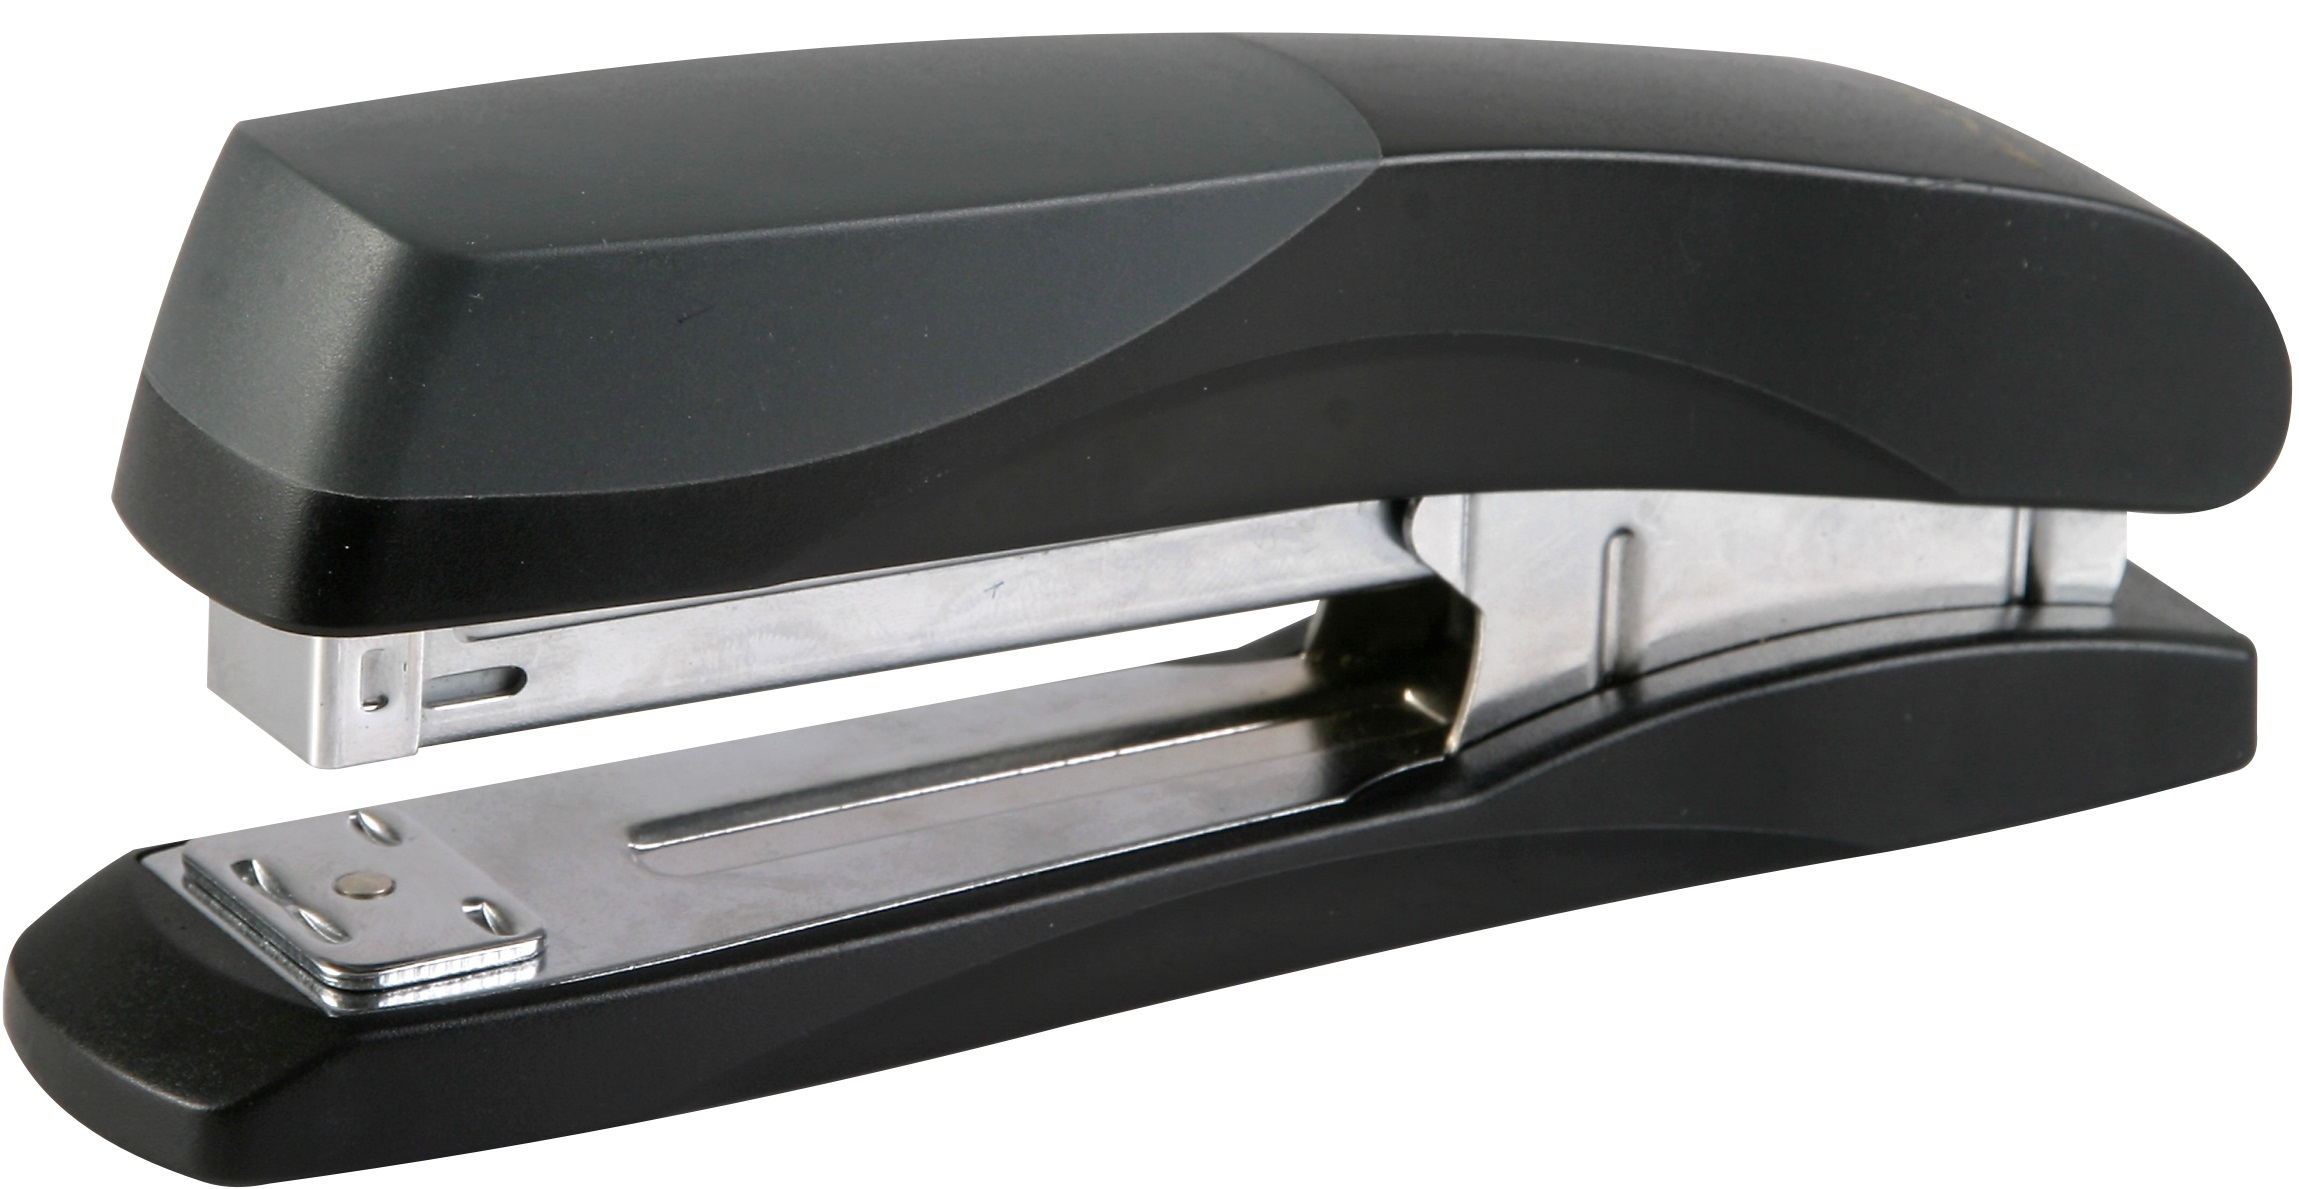 Parrot Staplers Plastic Lg 210x(24-6 26-6) Black 20 Pages F-S